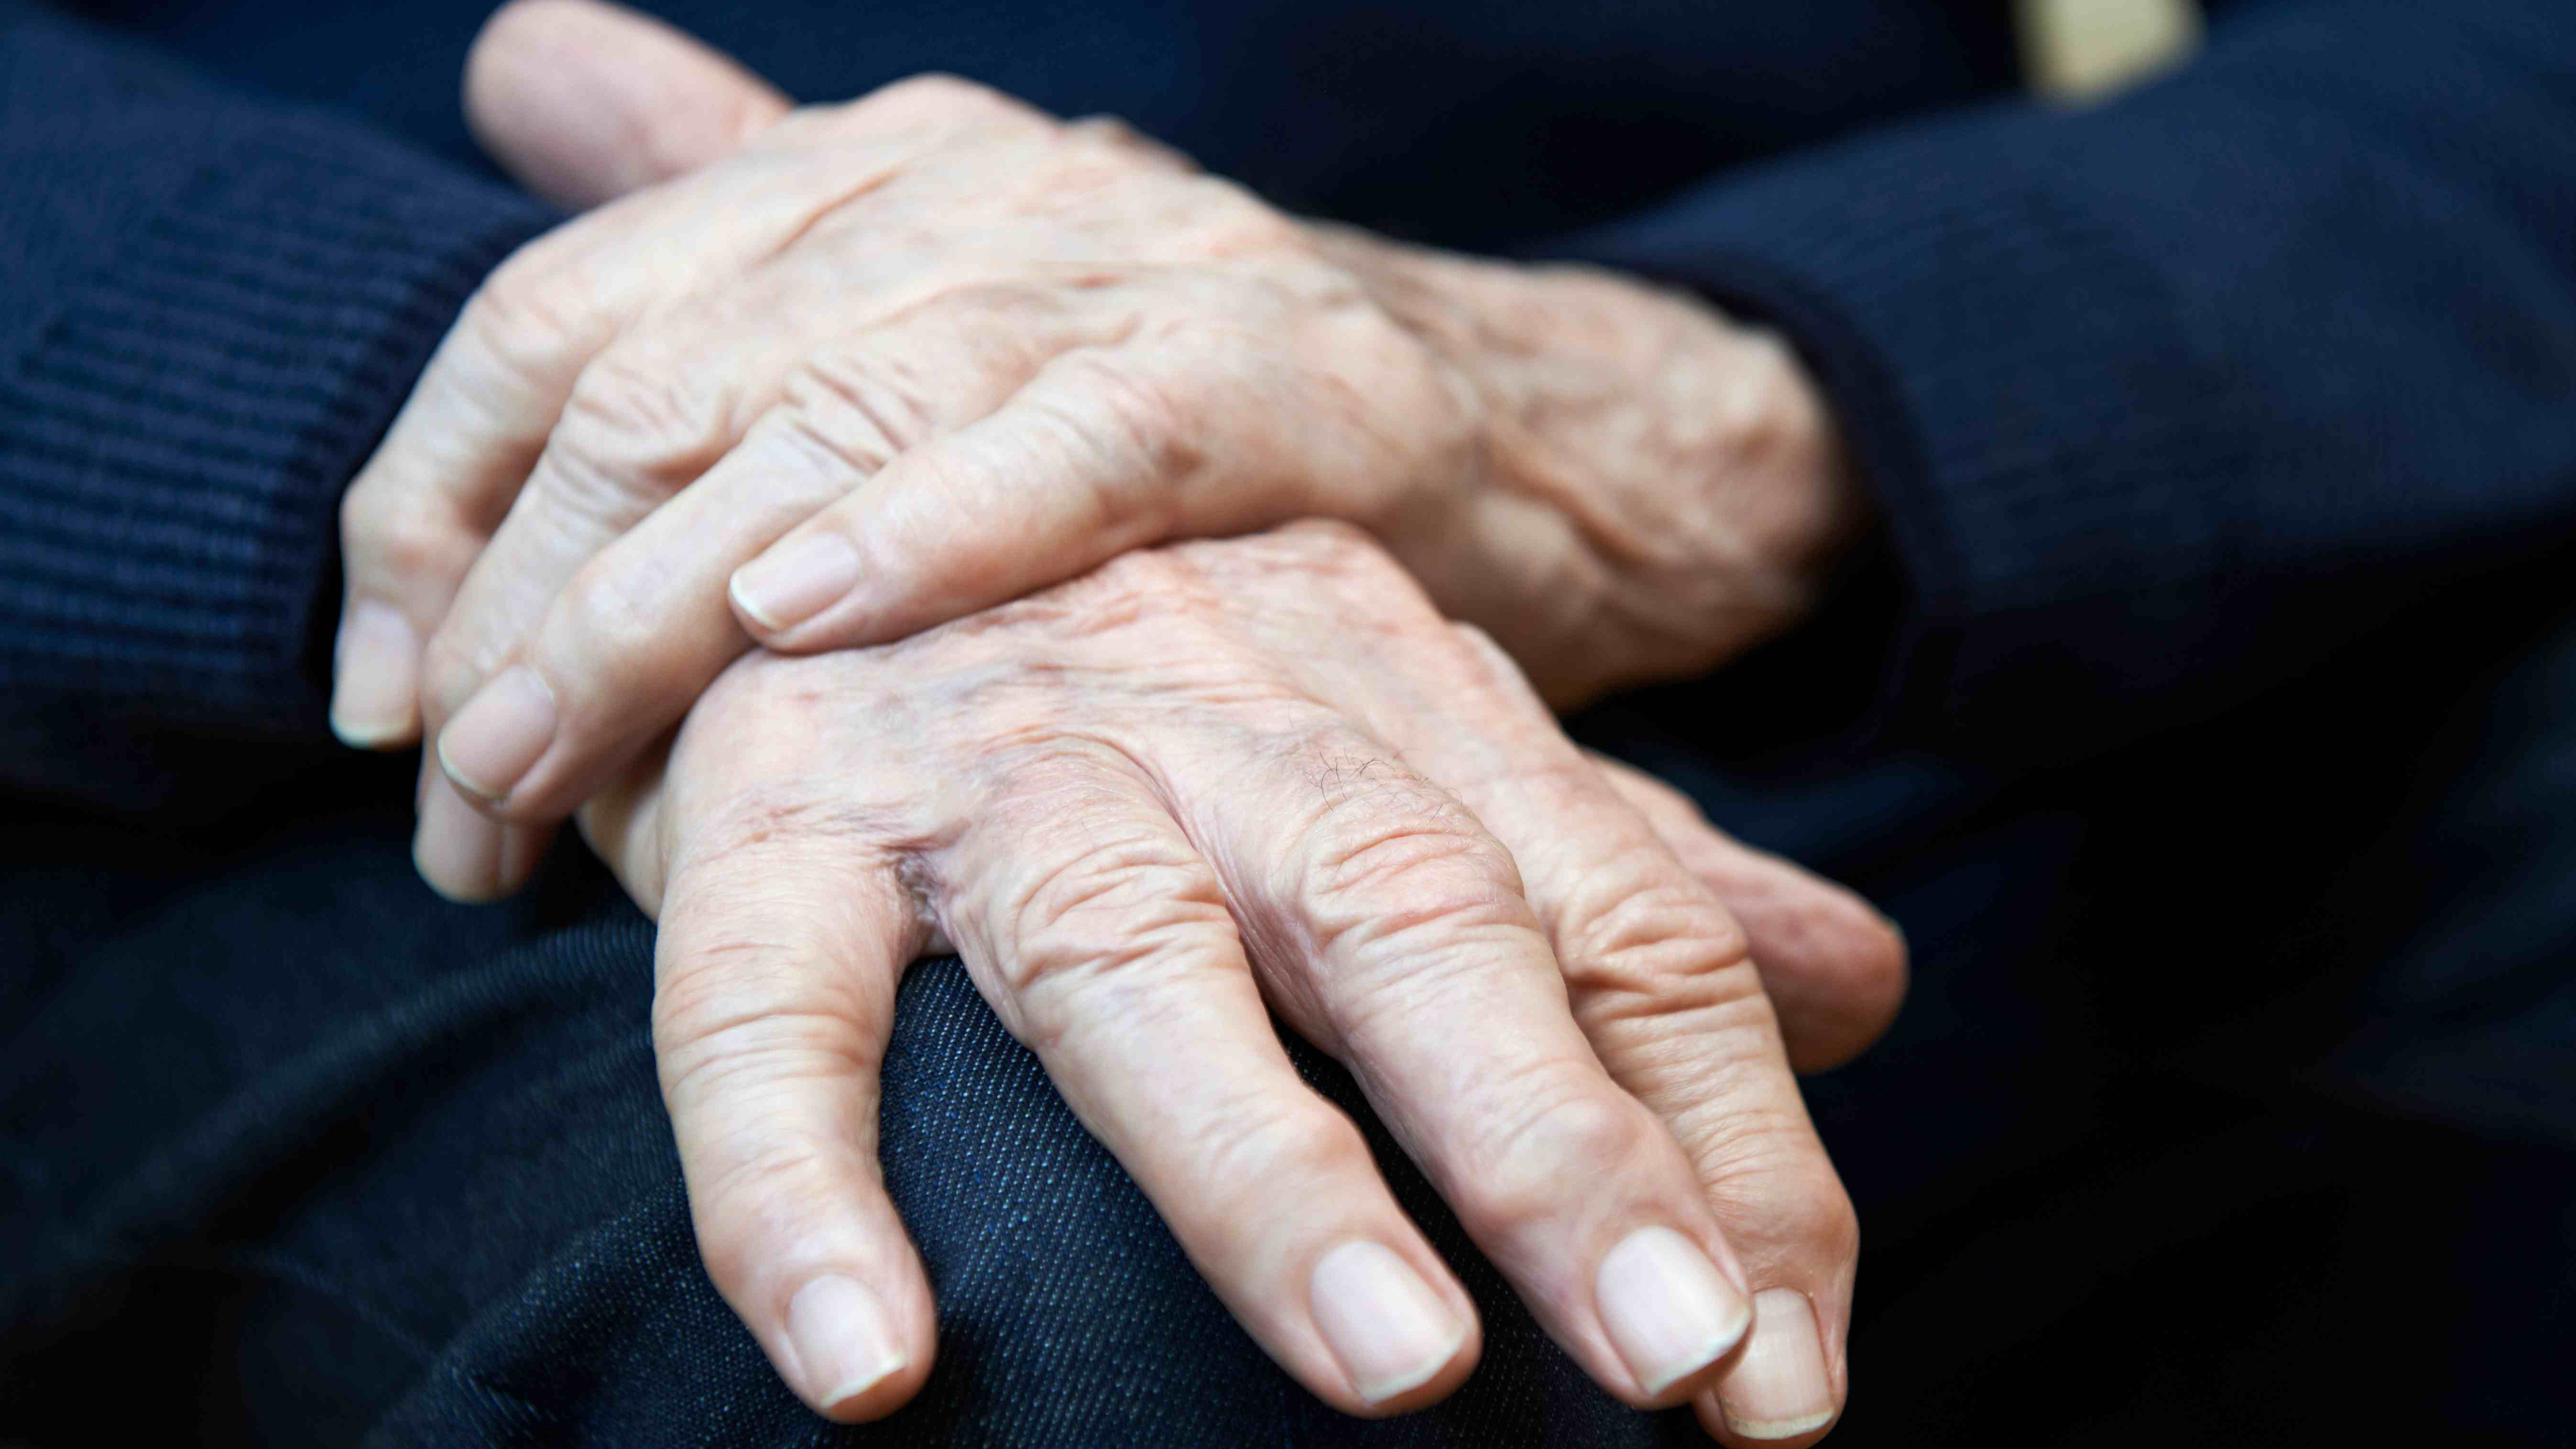 New trials give hope for Parkinson's disease treatment